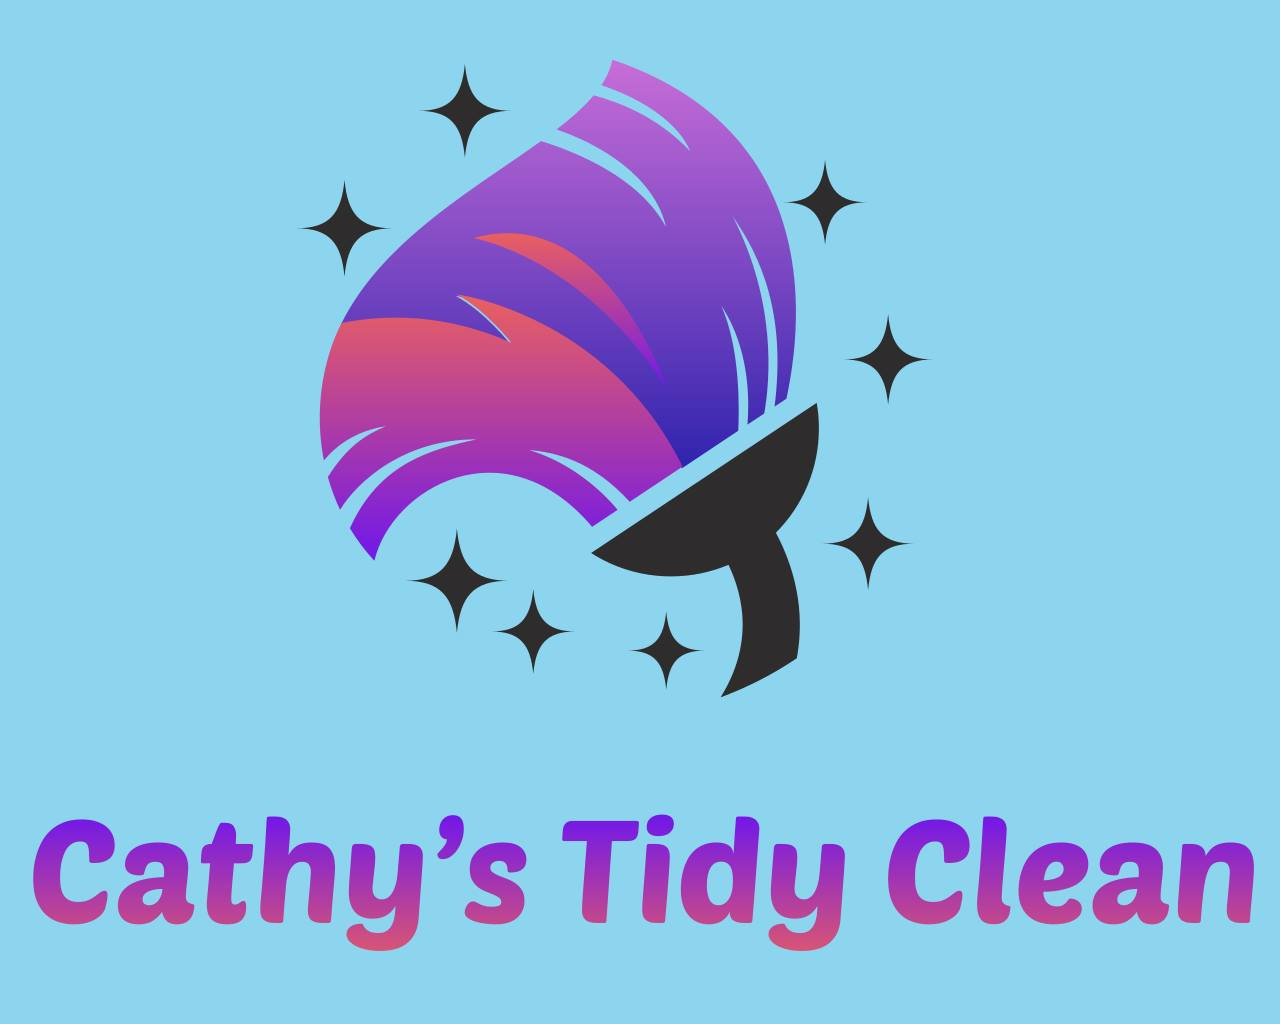 Cathy's Tidy Clean